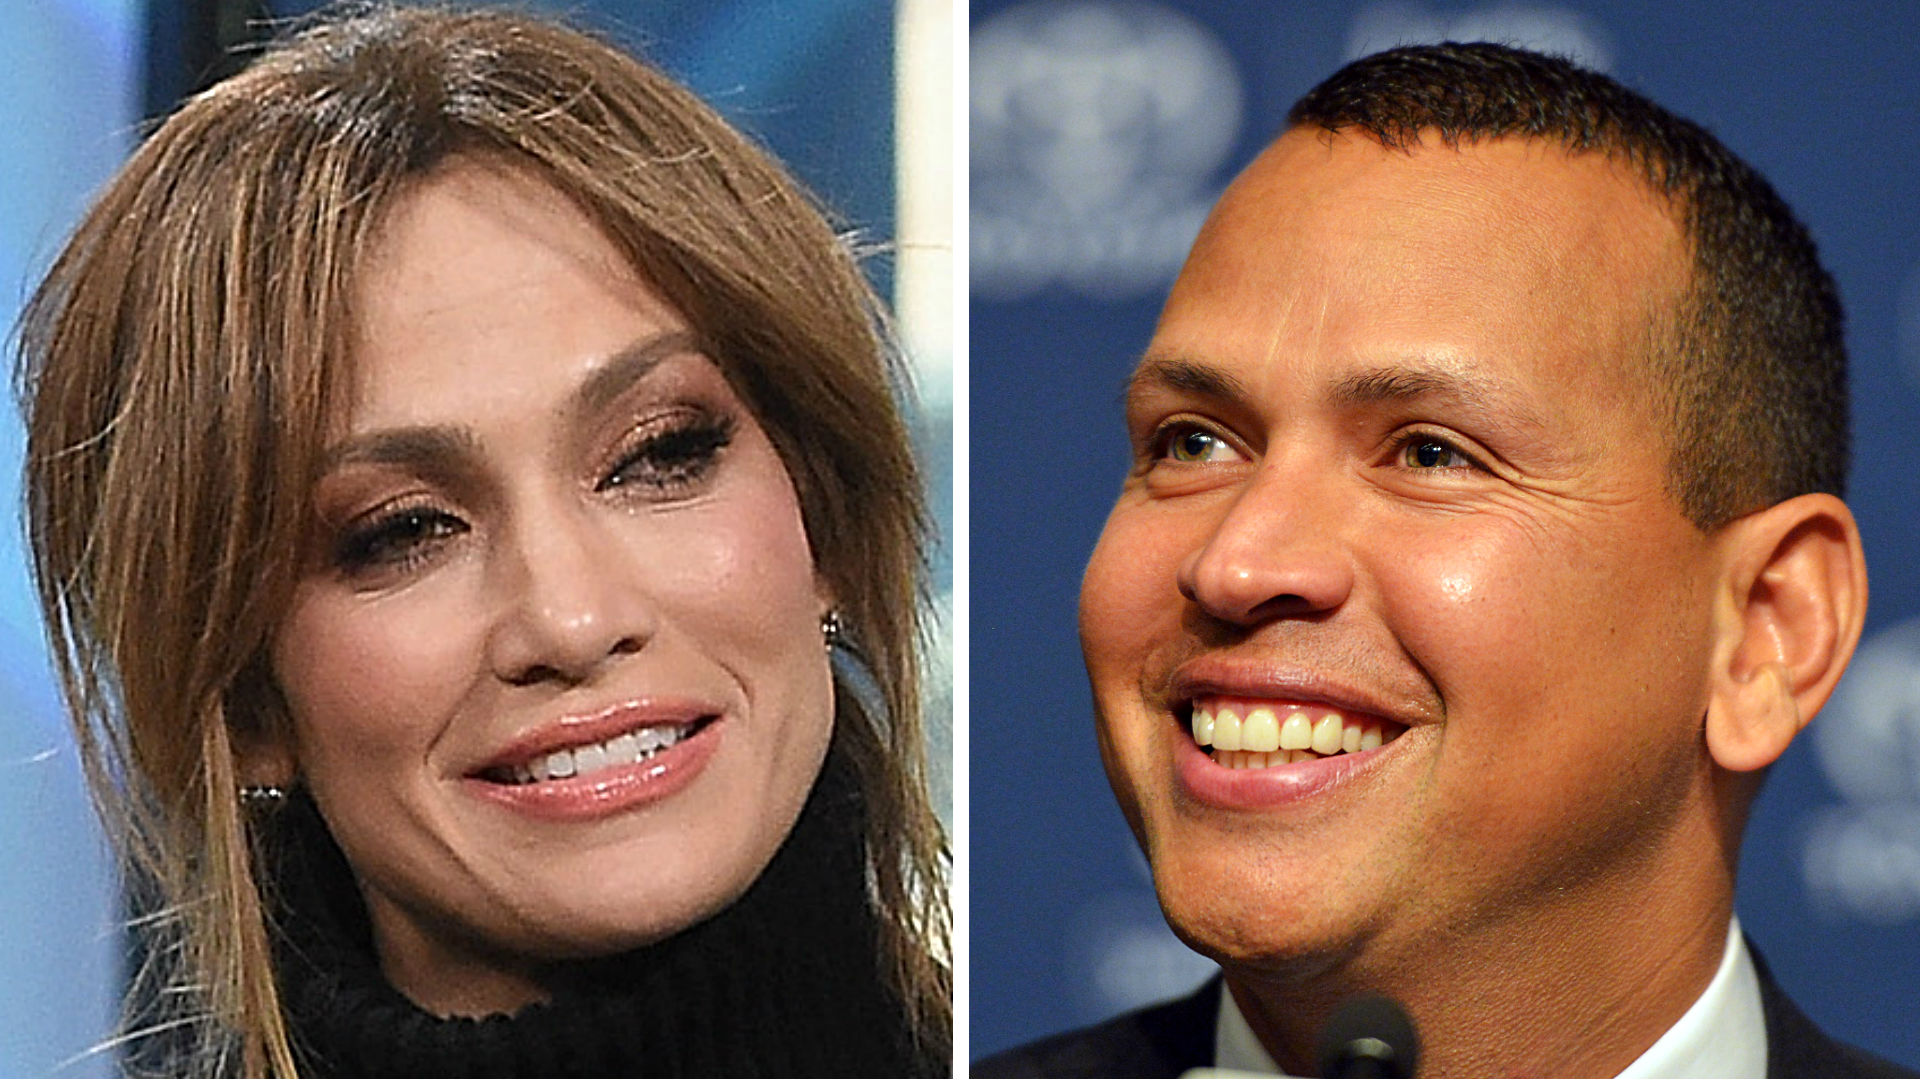 A-Rod/J-Lo reported bid to buy Mets includes investor who lost out on Marlins to Derek Jeter group 1